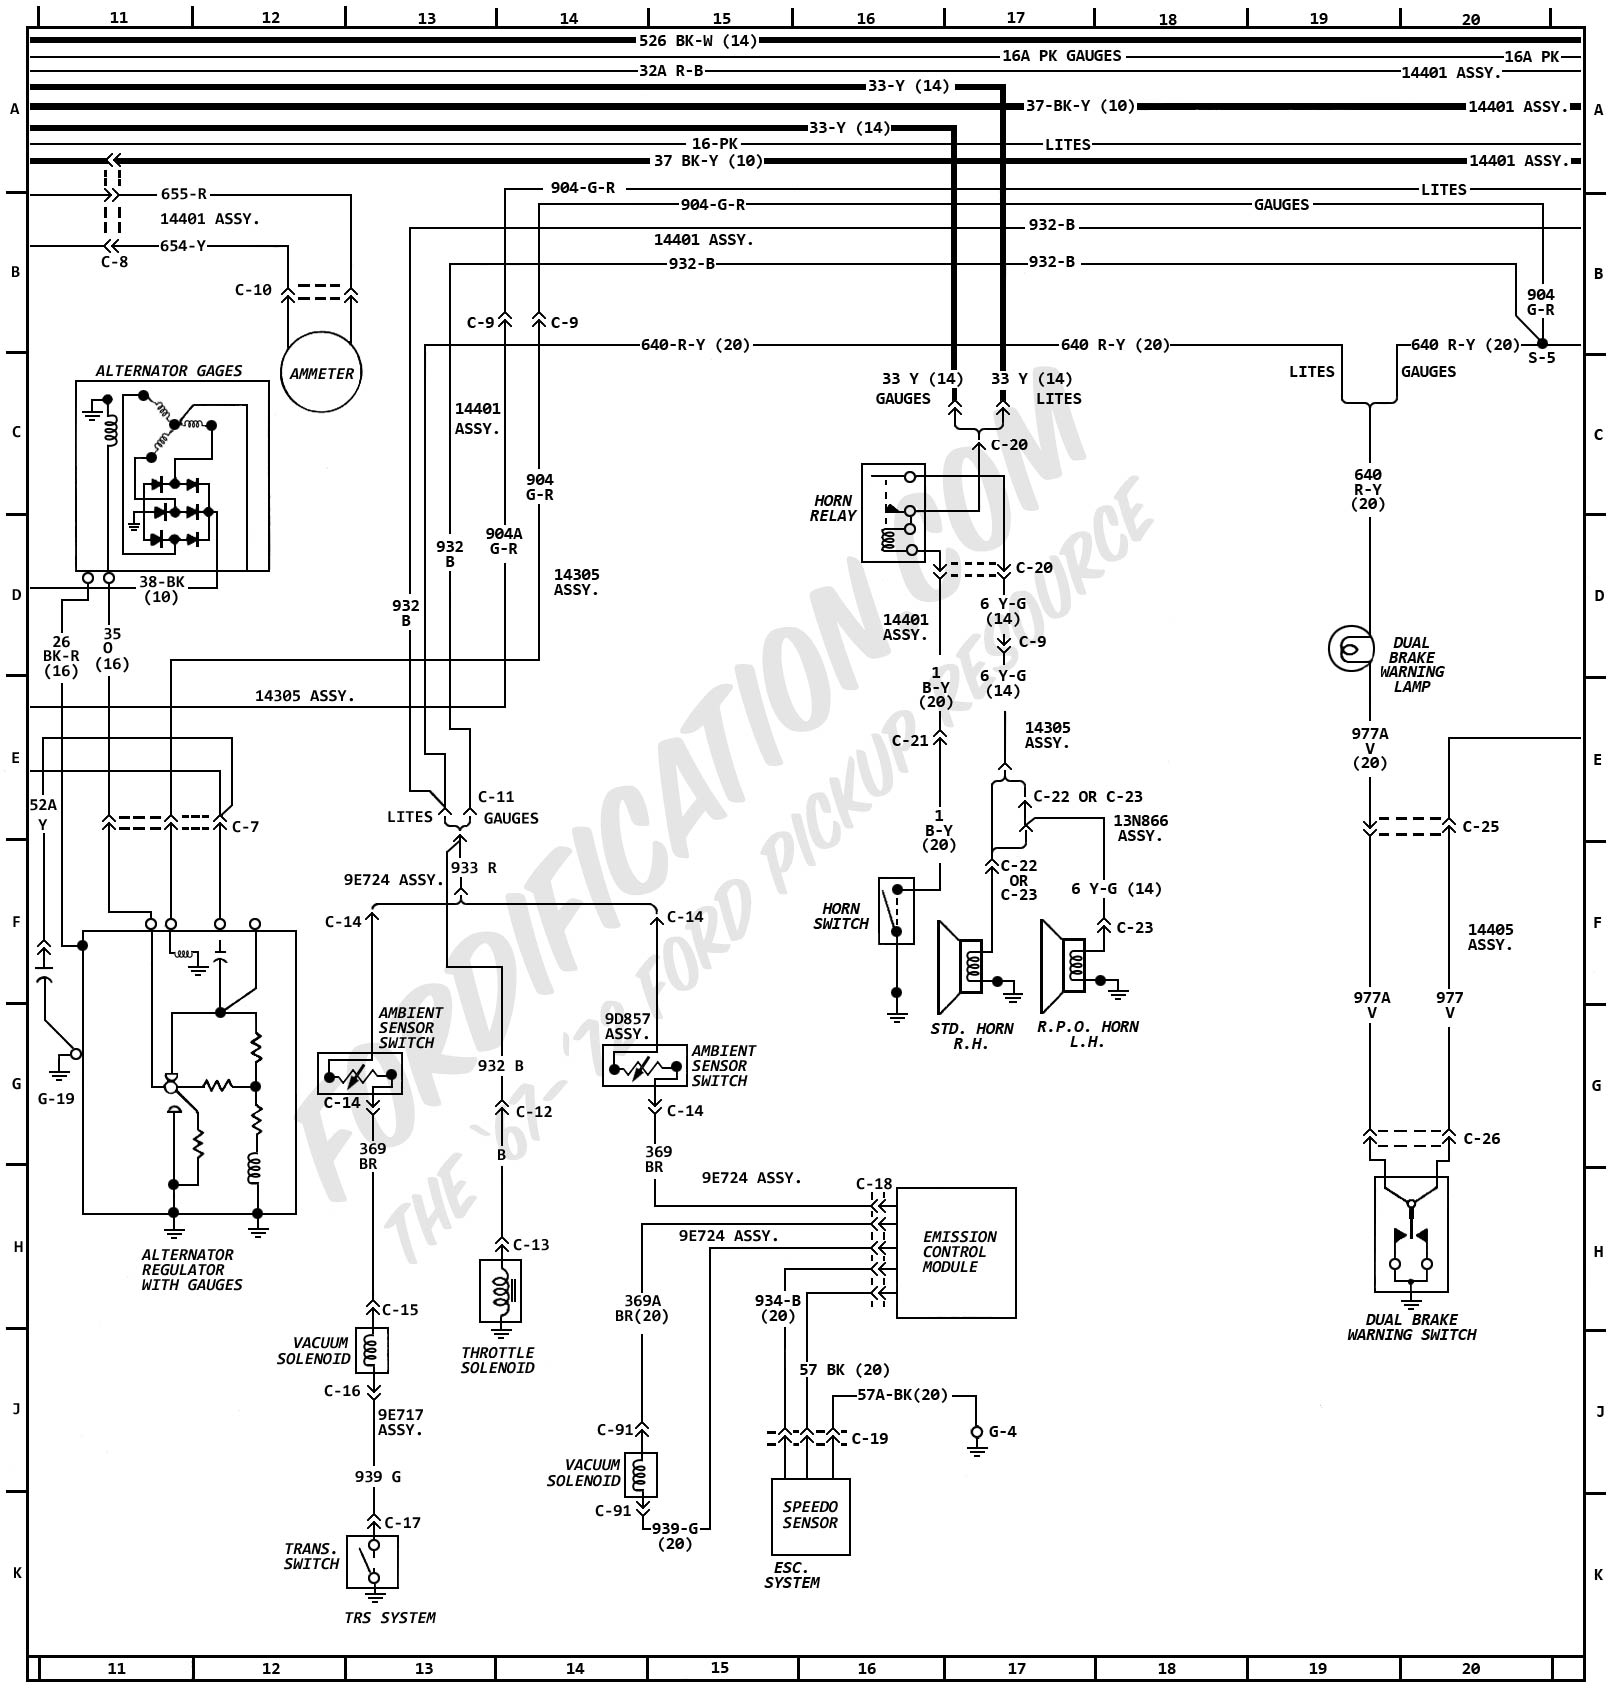 1972 Ford Truck Wiring Diagrams - FORDification.com  F Washer Pump Wiring Diagram on f500 wiring diagram, ford f 350 engine diagram, yukon wiring diagram, armada wiring diagram, ford wiring diagram, fairmont wiring diagram, aspire wiring diagram, van wiring diagram, model wiring diagram, f150 wiring diagram, 2011 f250 wiring diagram, sport trac wiring diagram, c-max wiring diagram, g6 wiring diagram, fusion wiring diagram, 4x4 wiring diagram, f450 wiring diagram, f550 wiring diagram, frontier wiring diagram, pinto wiring diagram,